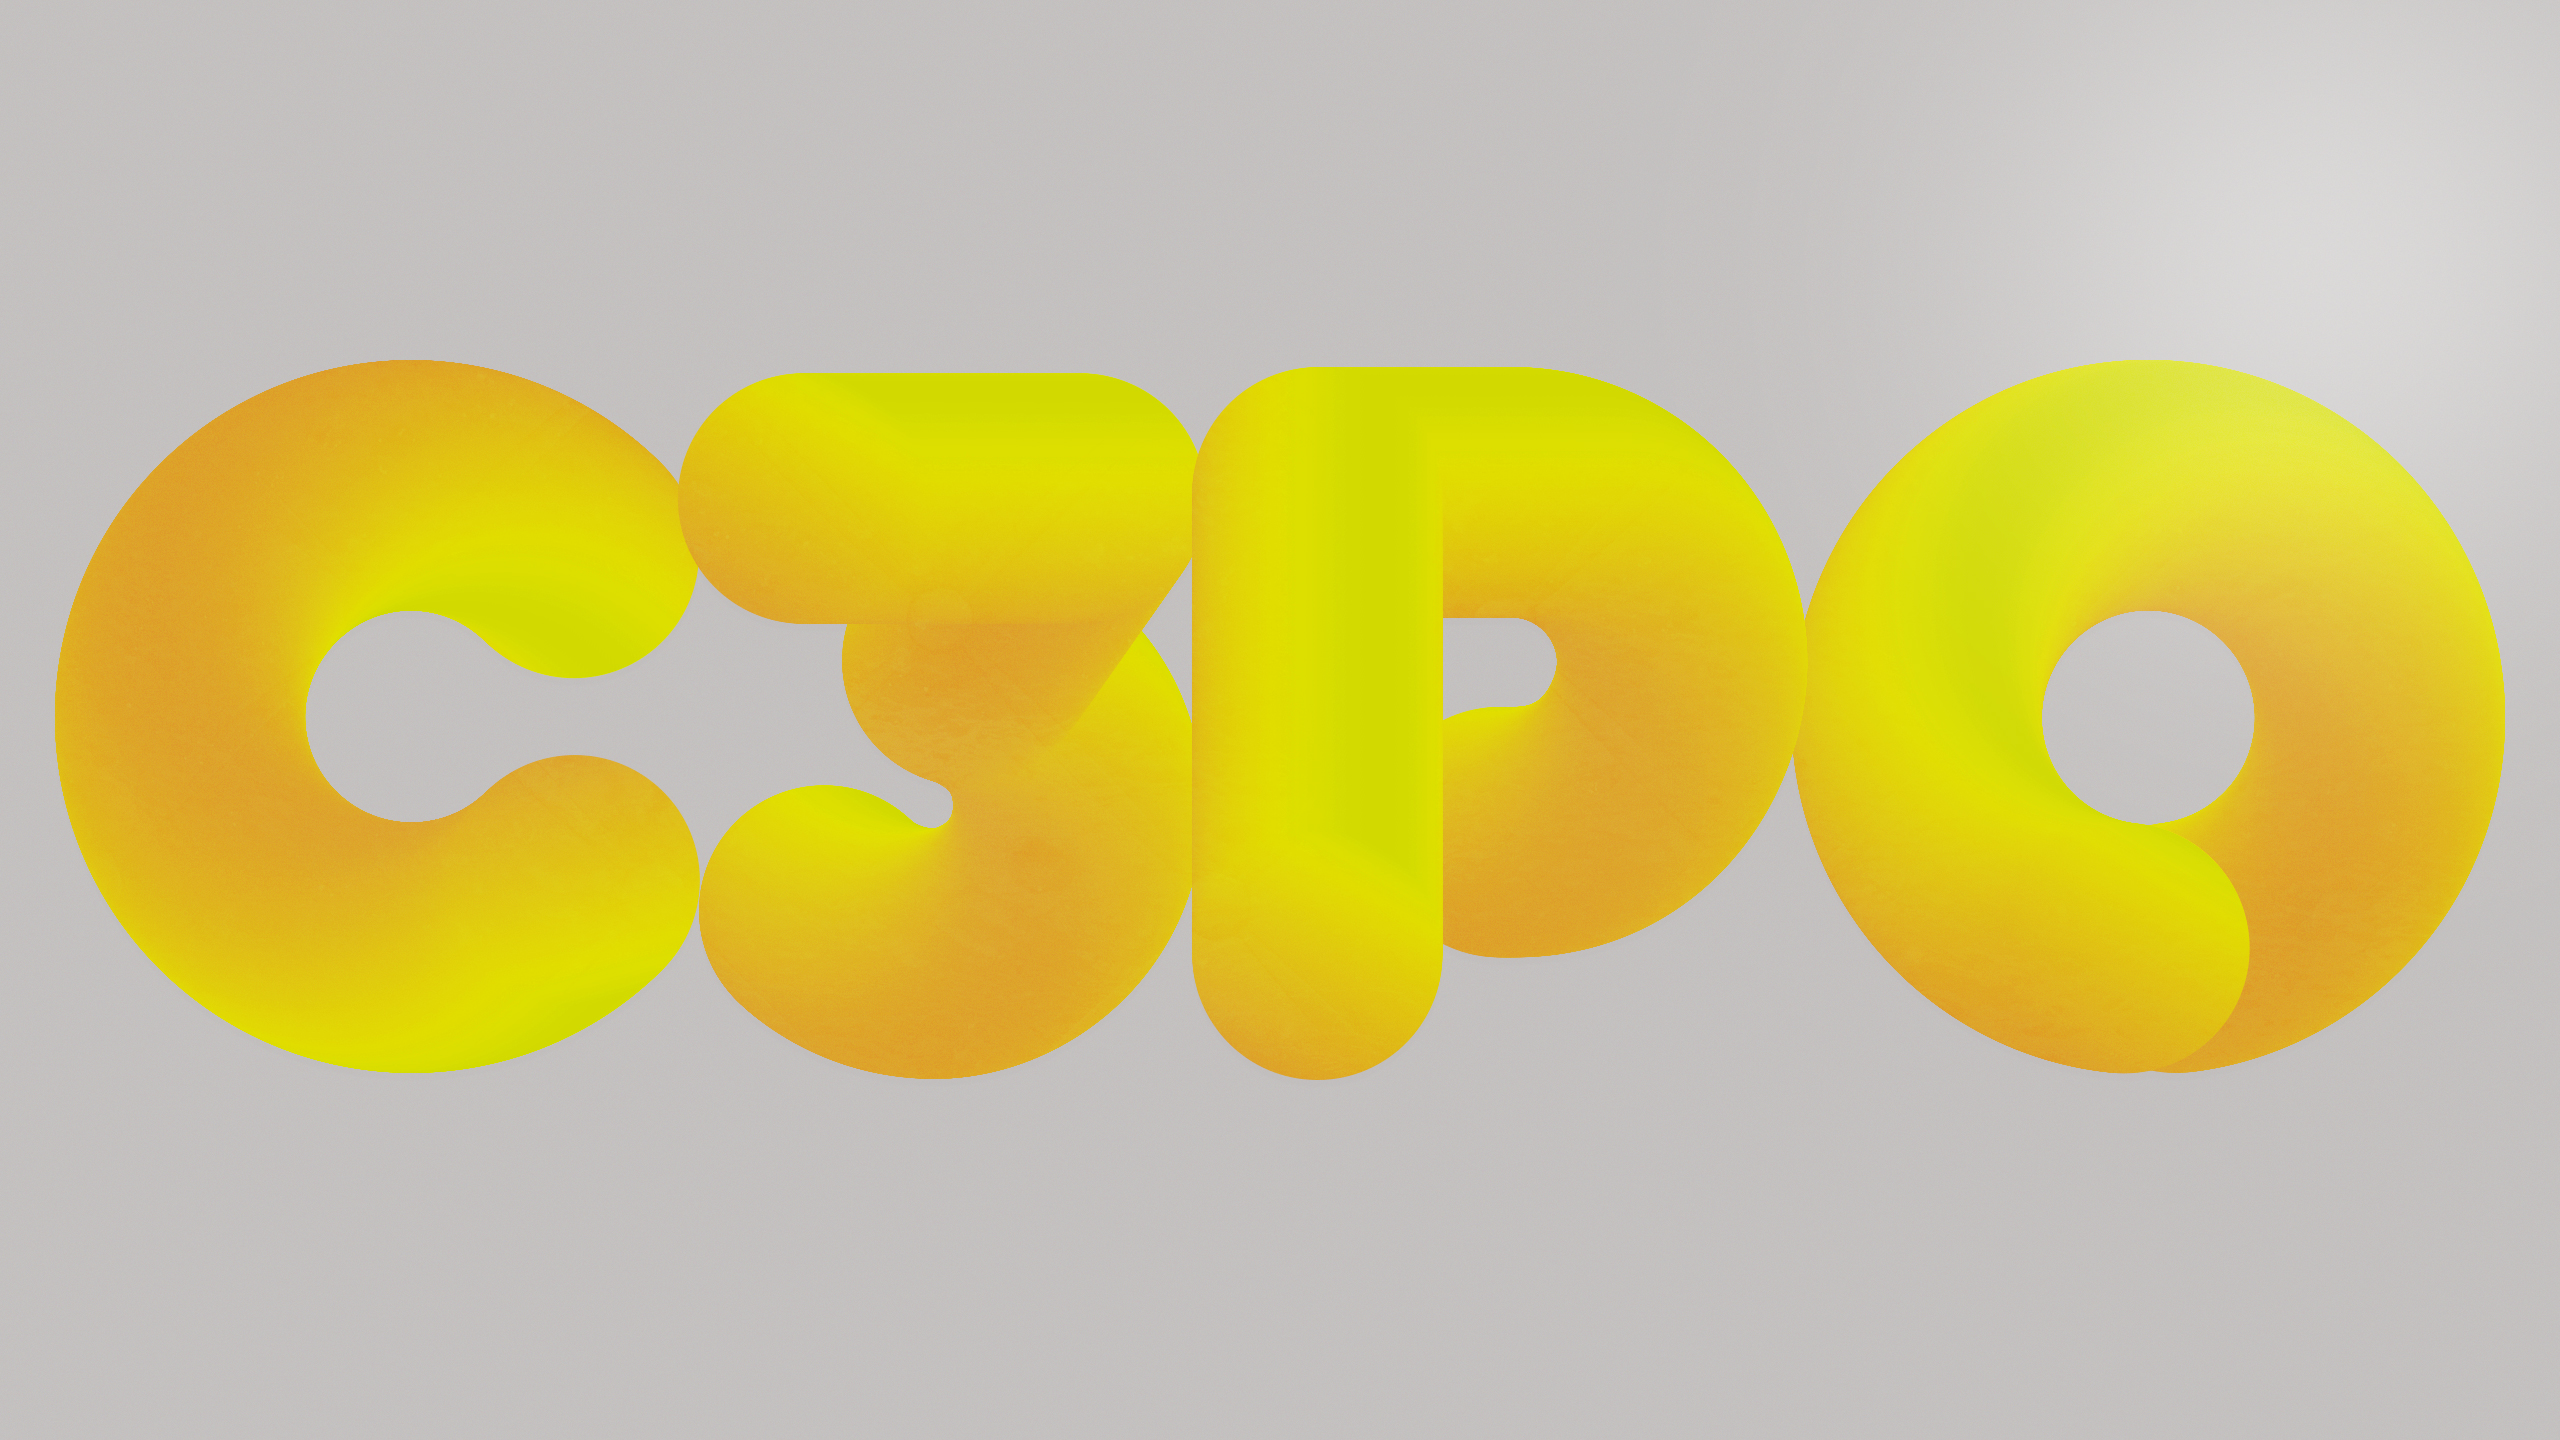 C3po Yellow 3d Bubble Letters Graphic Design